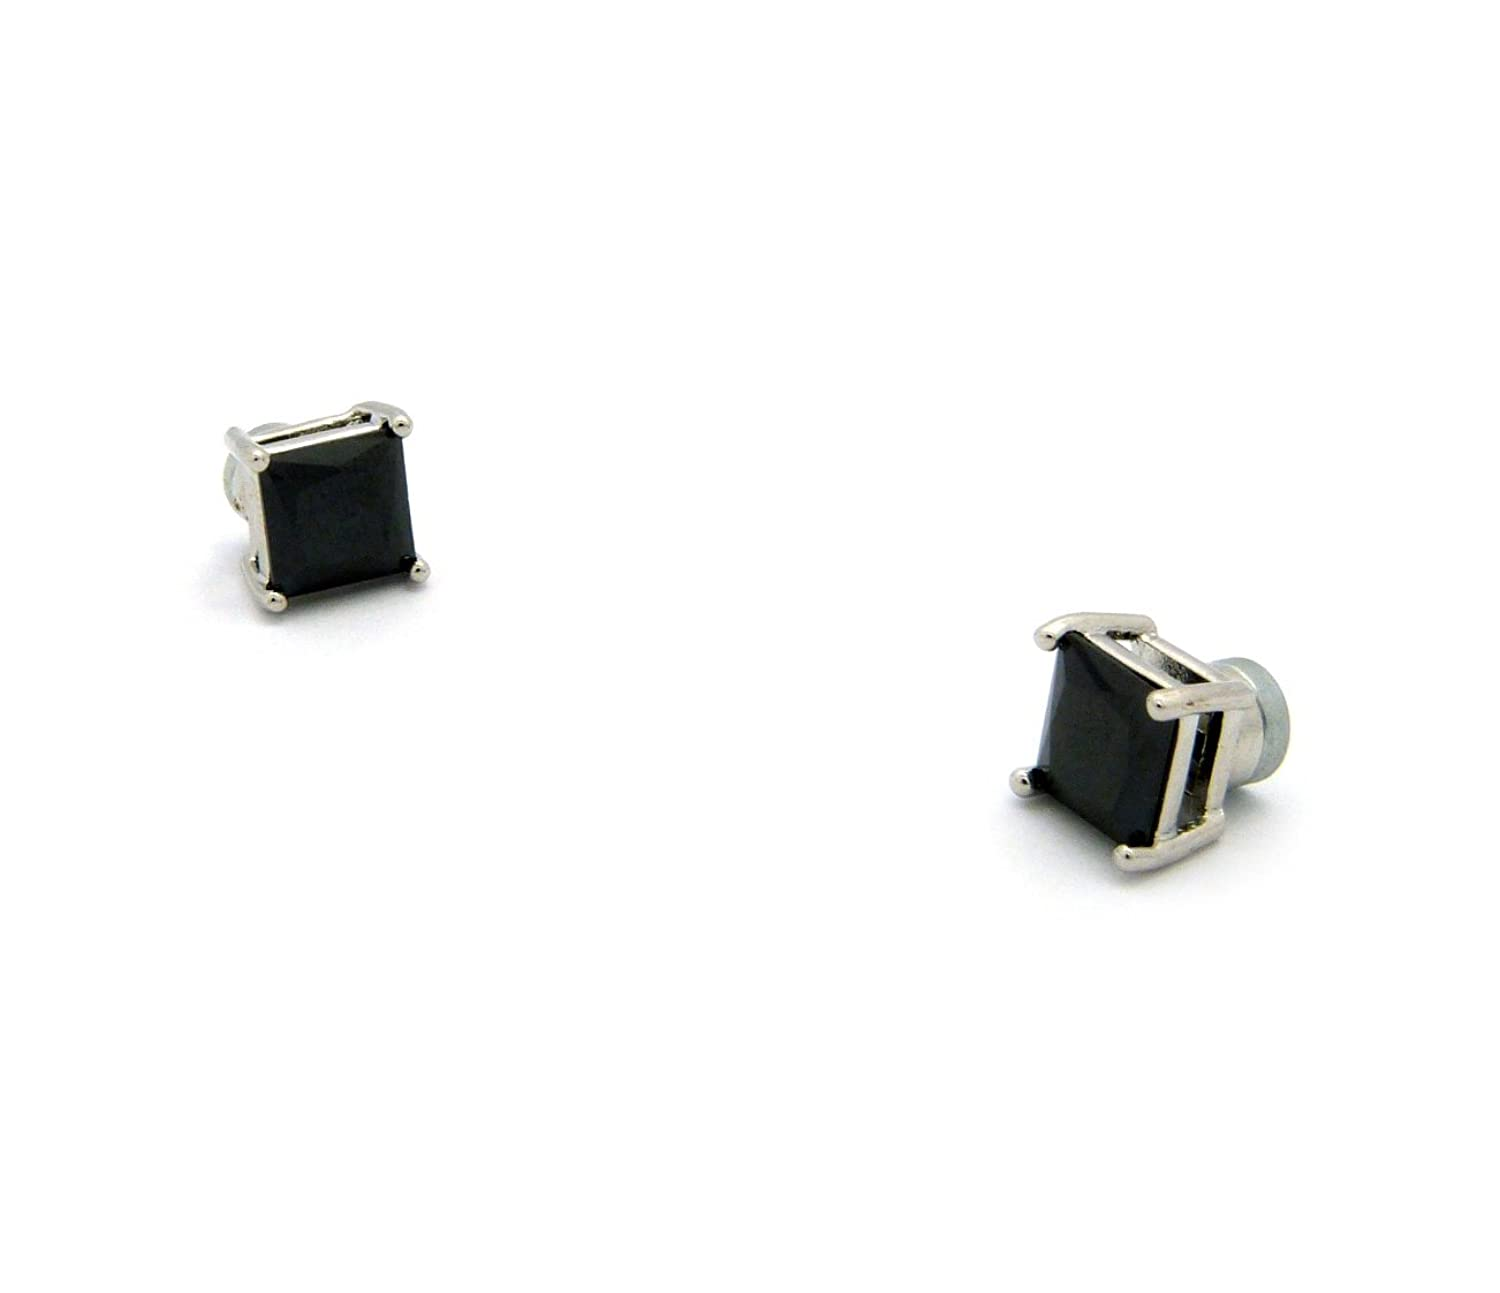 Silver Tone 4,5,6,7,8,9,10mm Jet Black Square Shape Cubic Zirconia Magnetic Stud Earring (All Size)